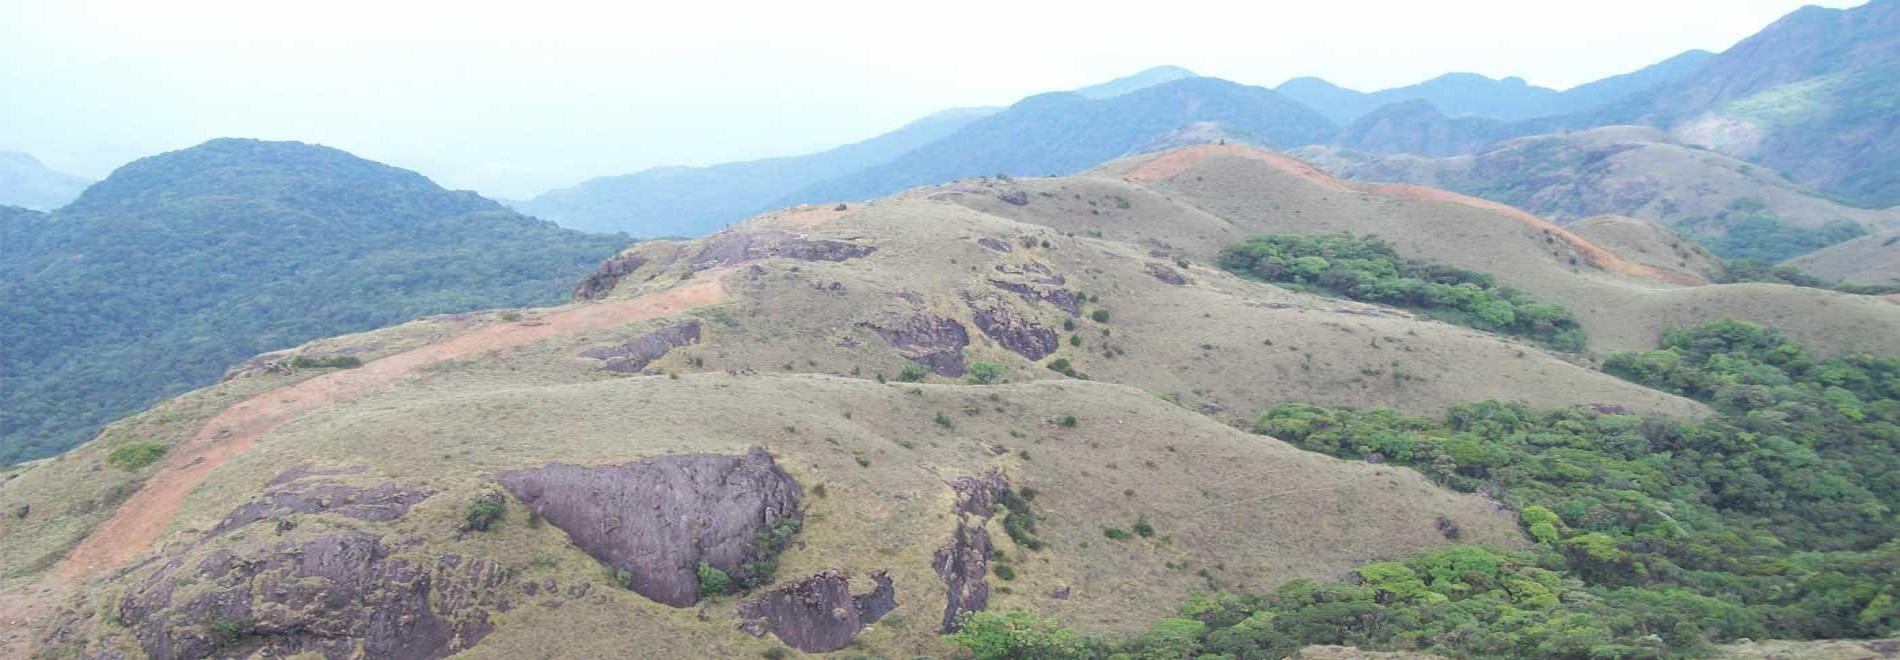 ATTAPADI View